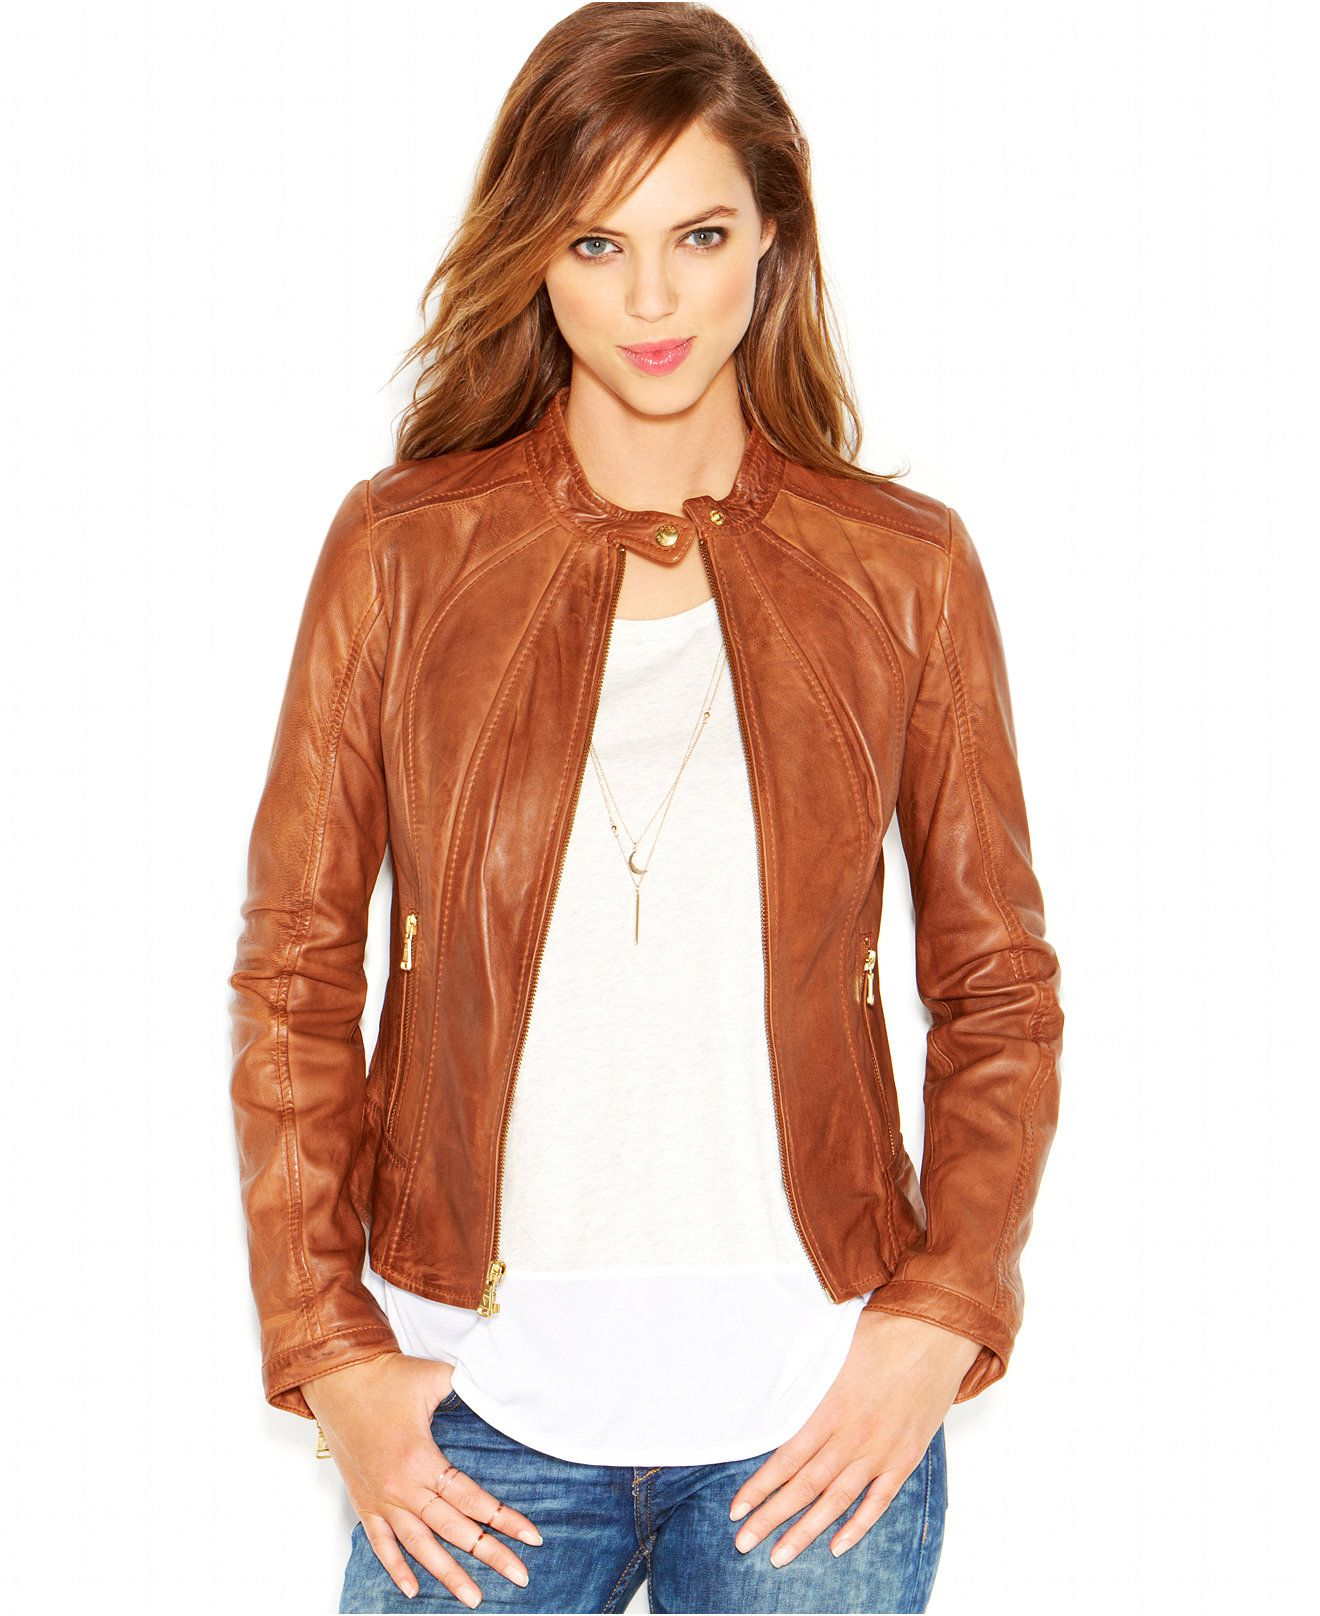 Guess Collarless Leather Moto Jacket Coats Women Macy S Jackets Coats For Women Collarless [ 1616 x 1320 Pixel ]